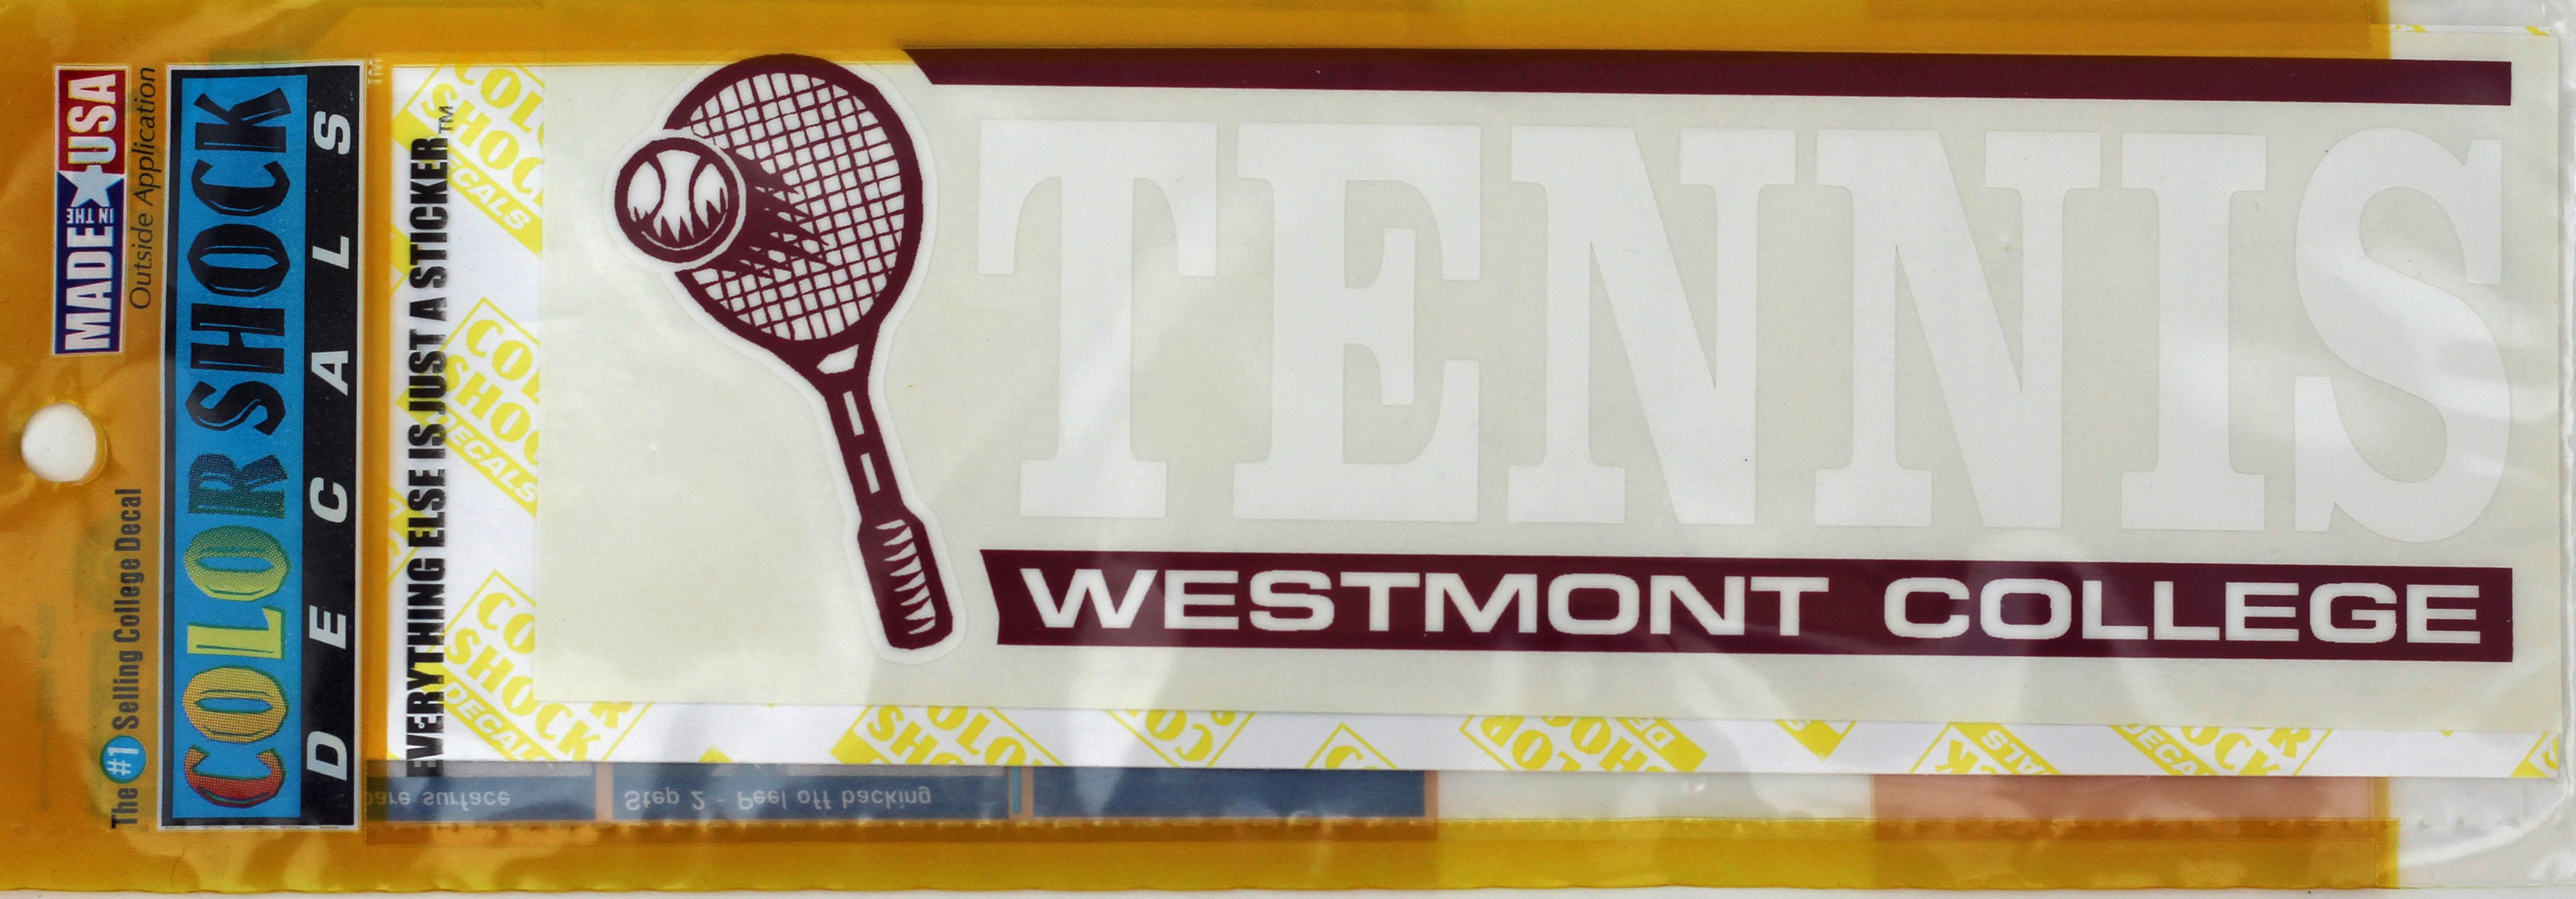 Image for the Color Shock Tennis Decal product